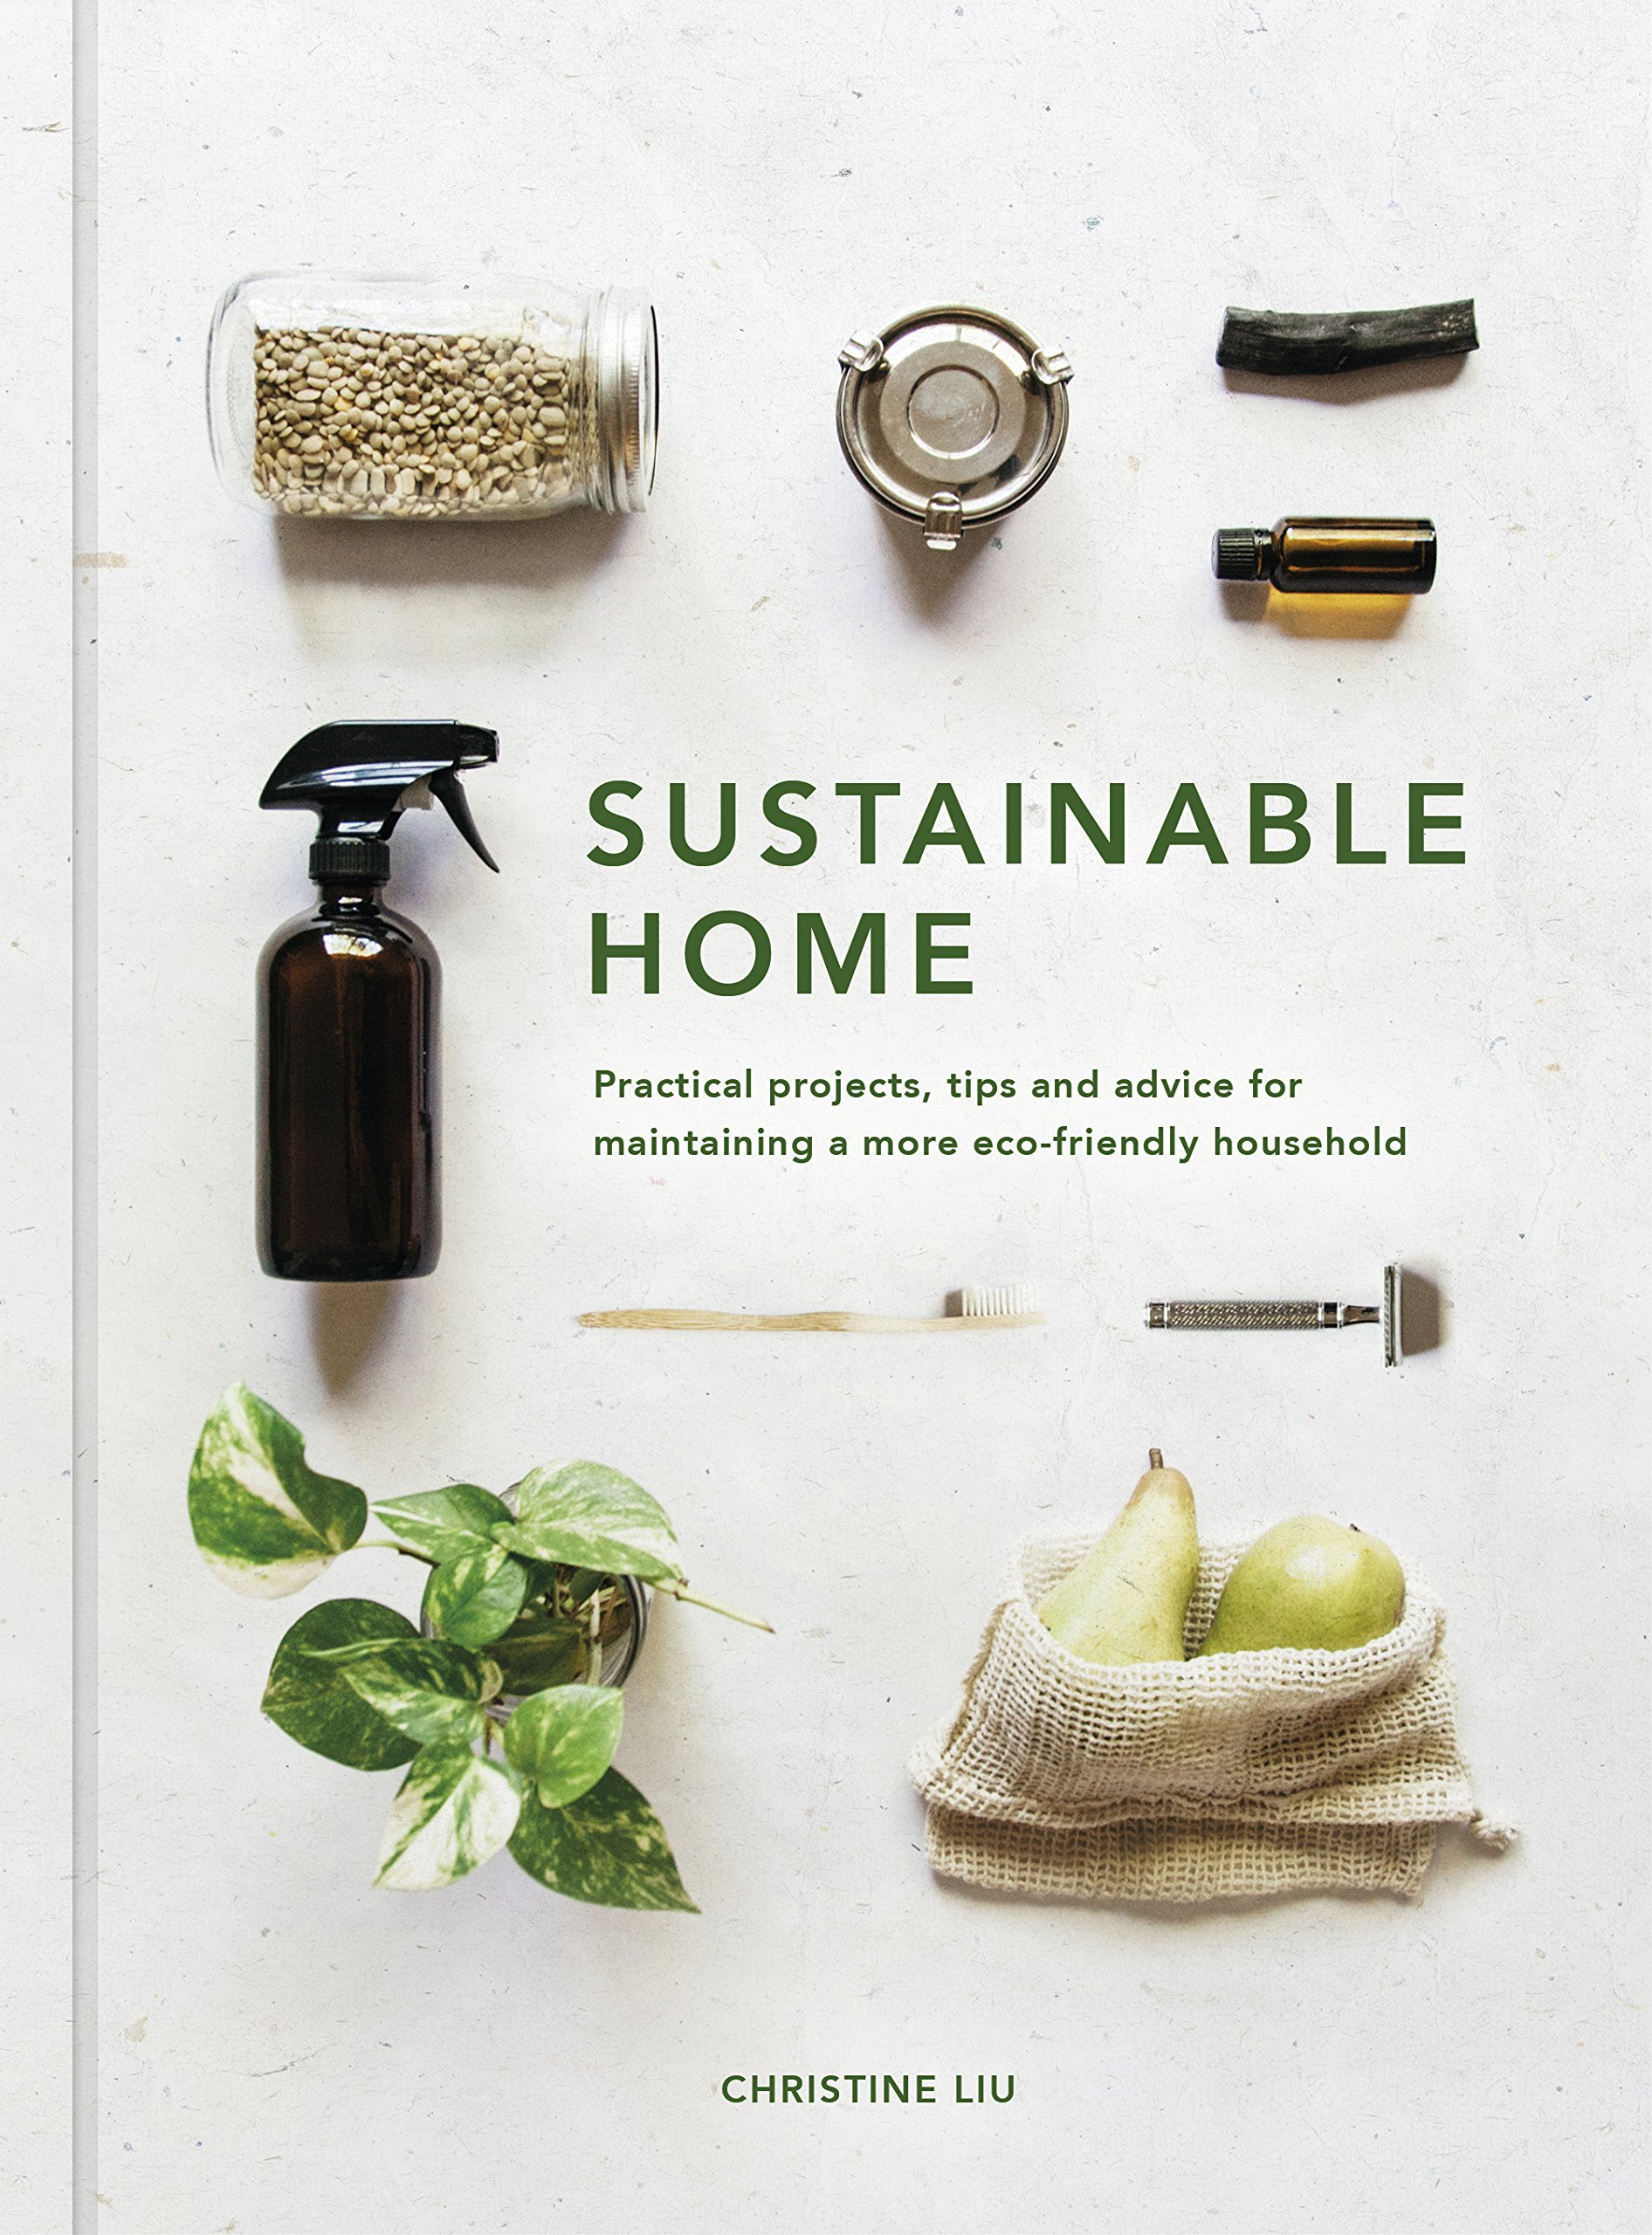 Sustainable Home: Practical projects, tips and advice for maintaining a more eco-friendly household 1